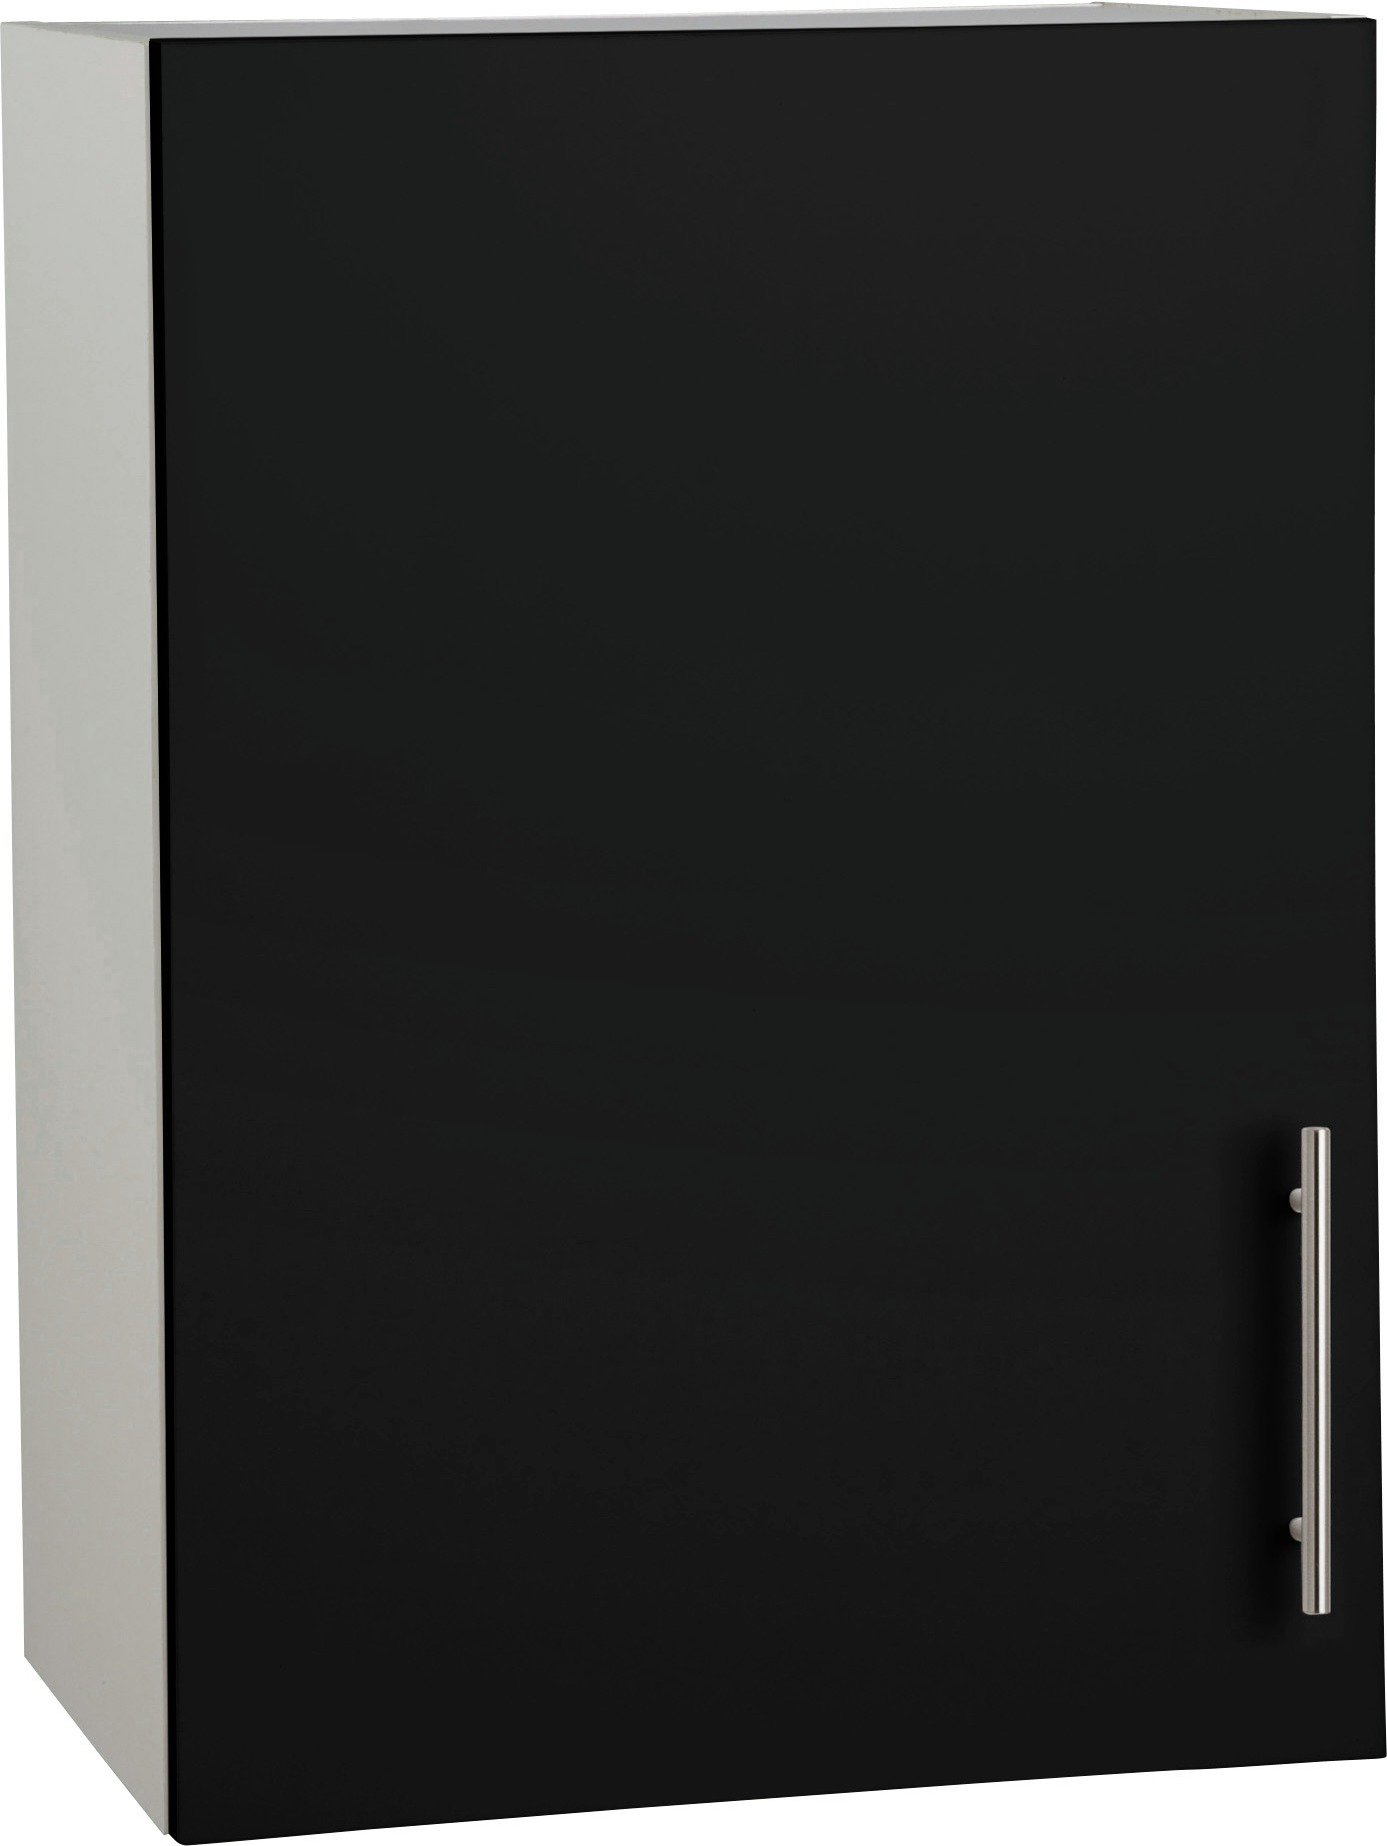 Athina 500mm Fitted Kitchen Wall Unit - Black.